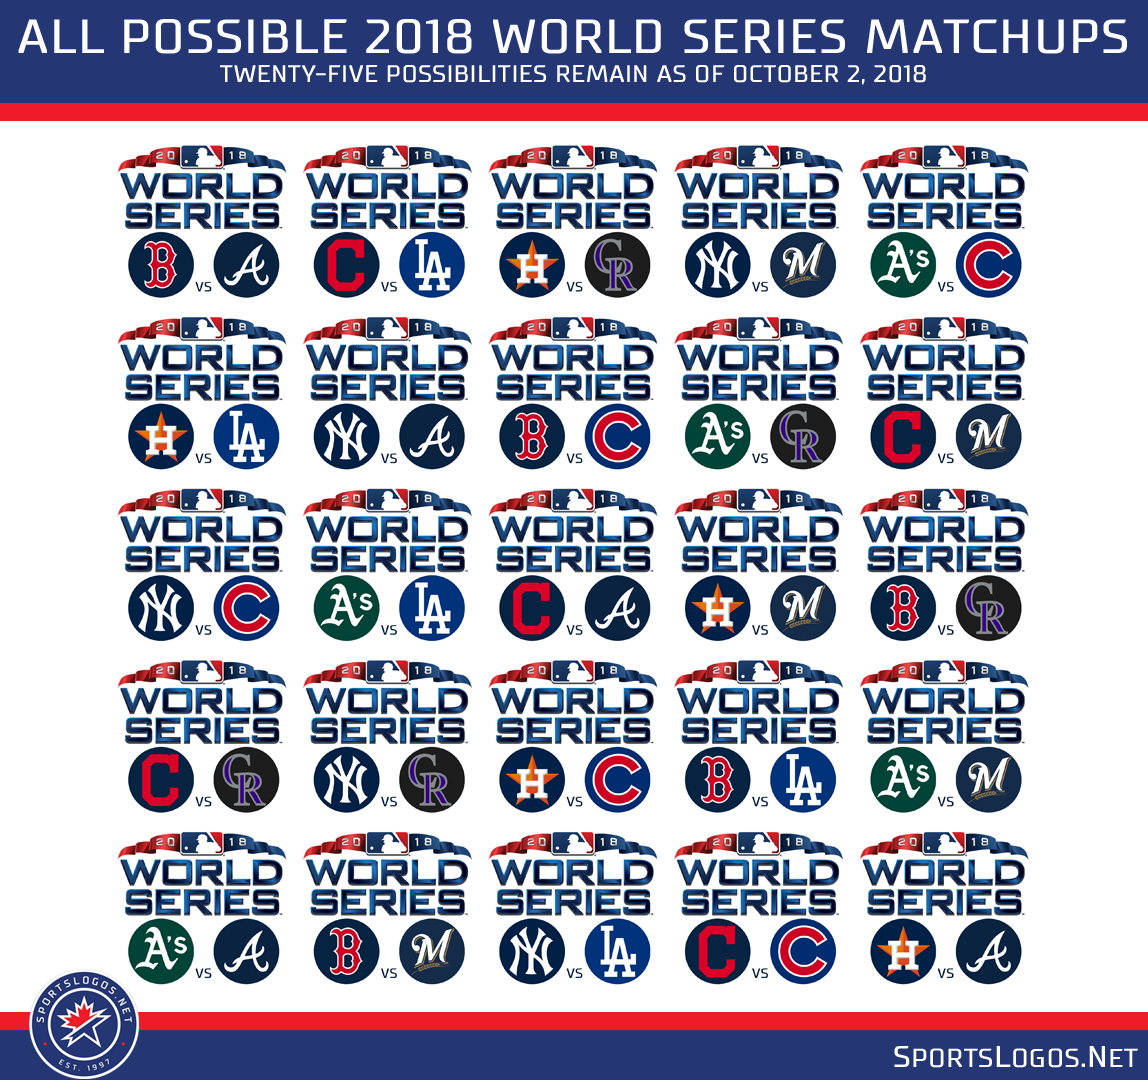 Counsell: Miley to start for Brewers in Game 3